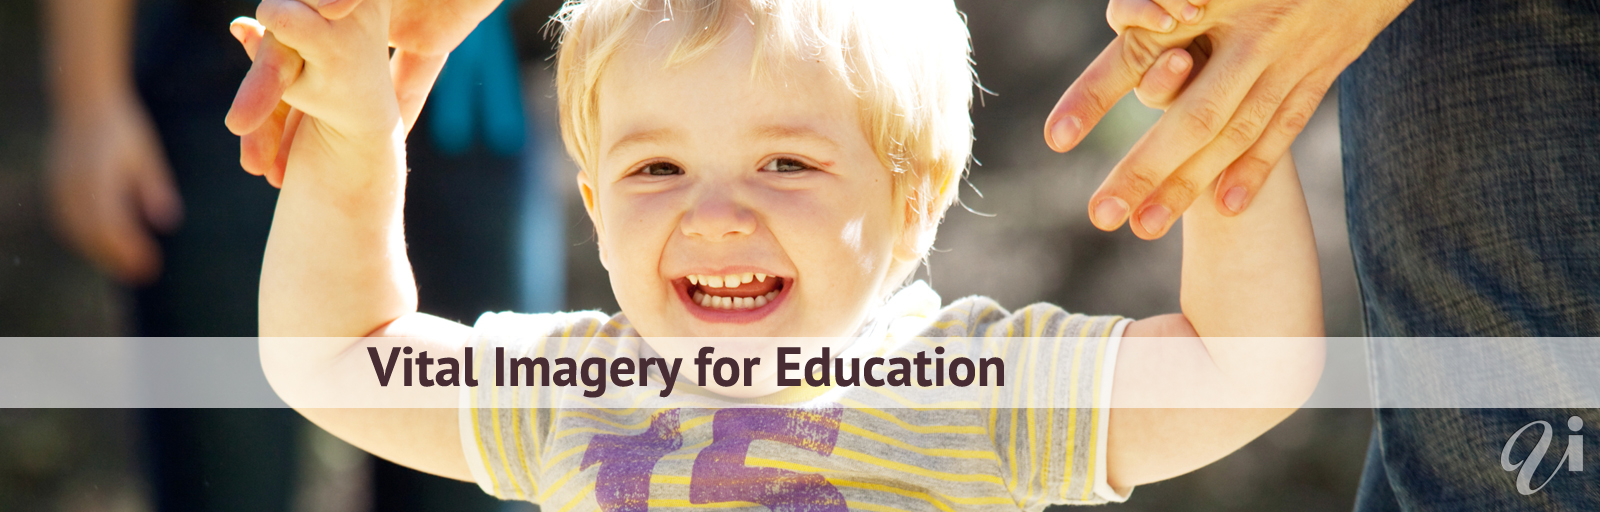 Vital Imagery for Education